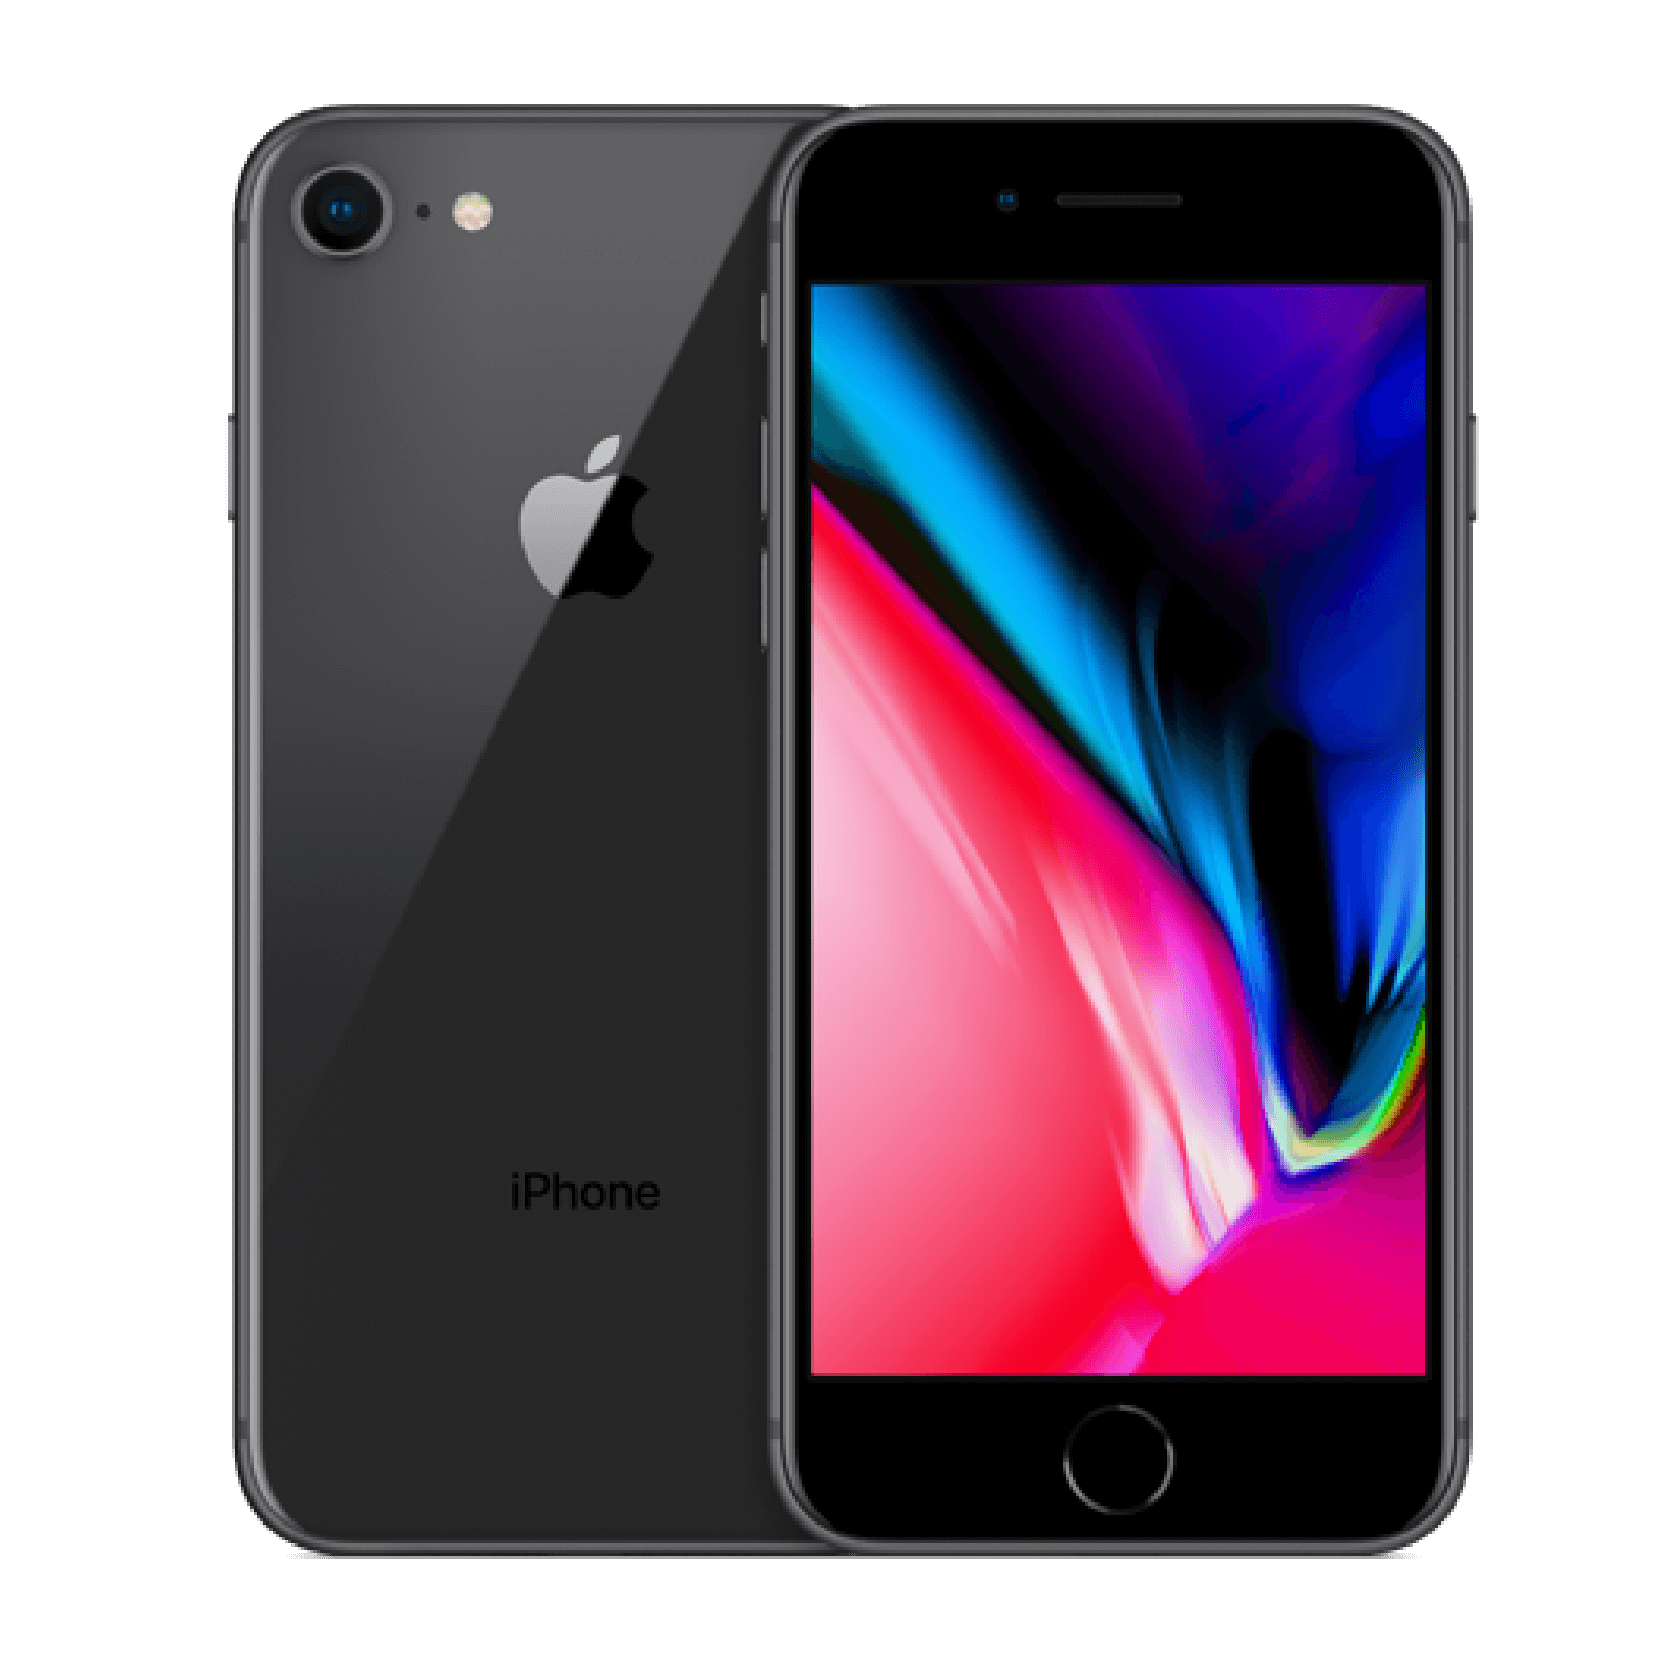 iPhone 8 Back and Front